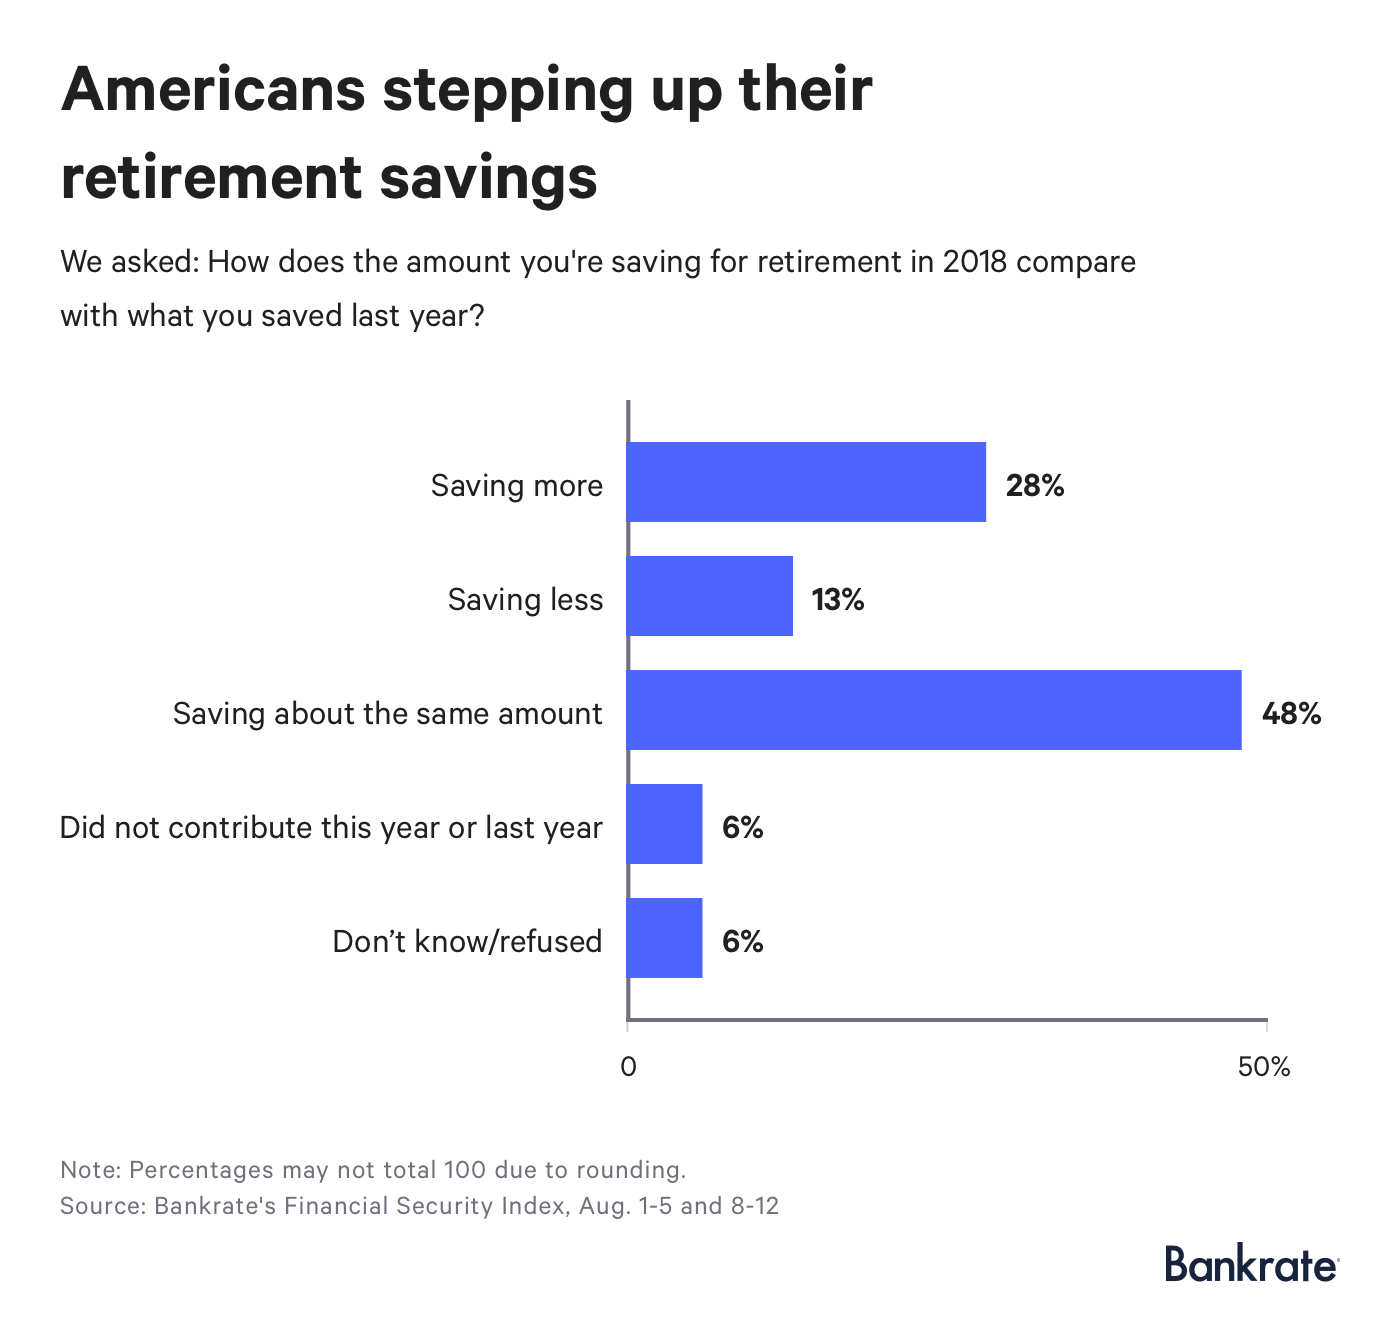 Americans stepping up their retirement savings